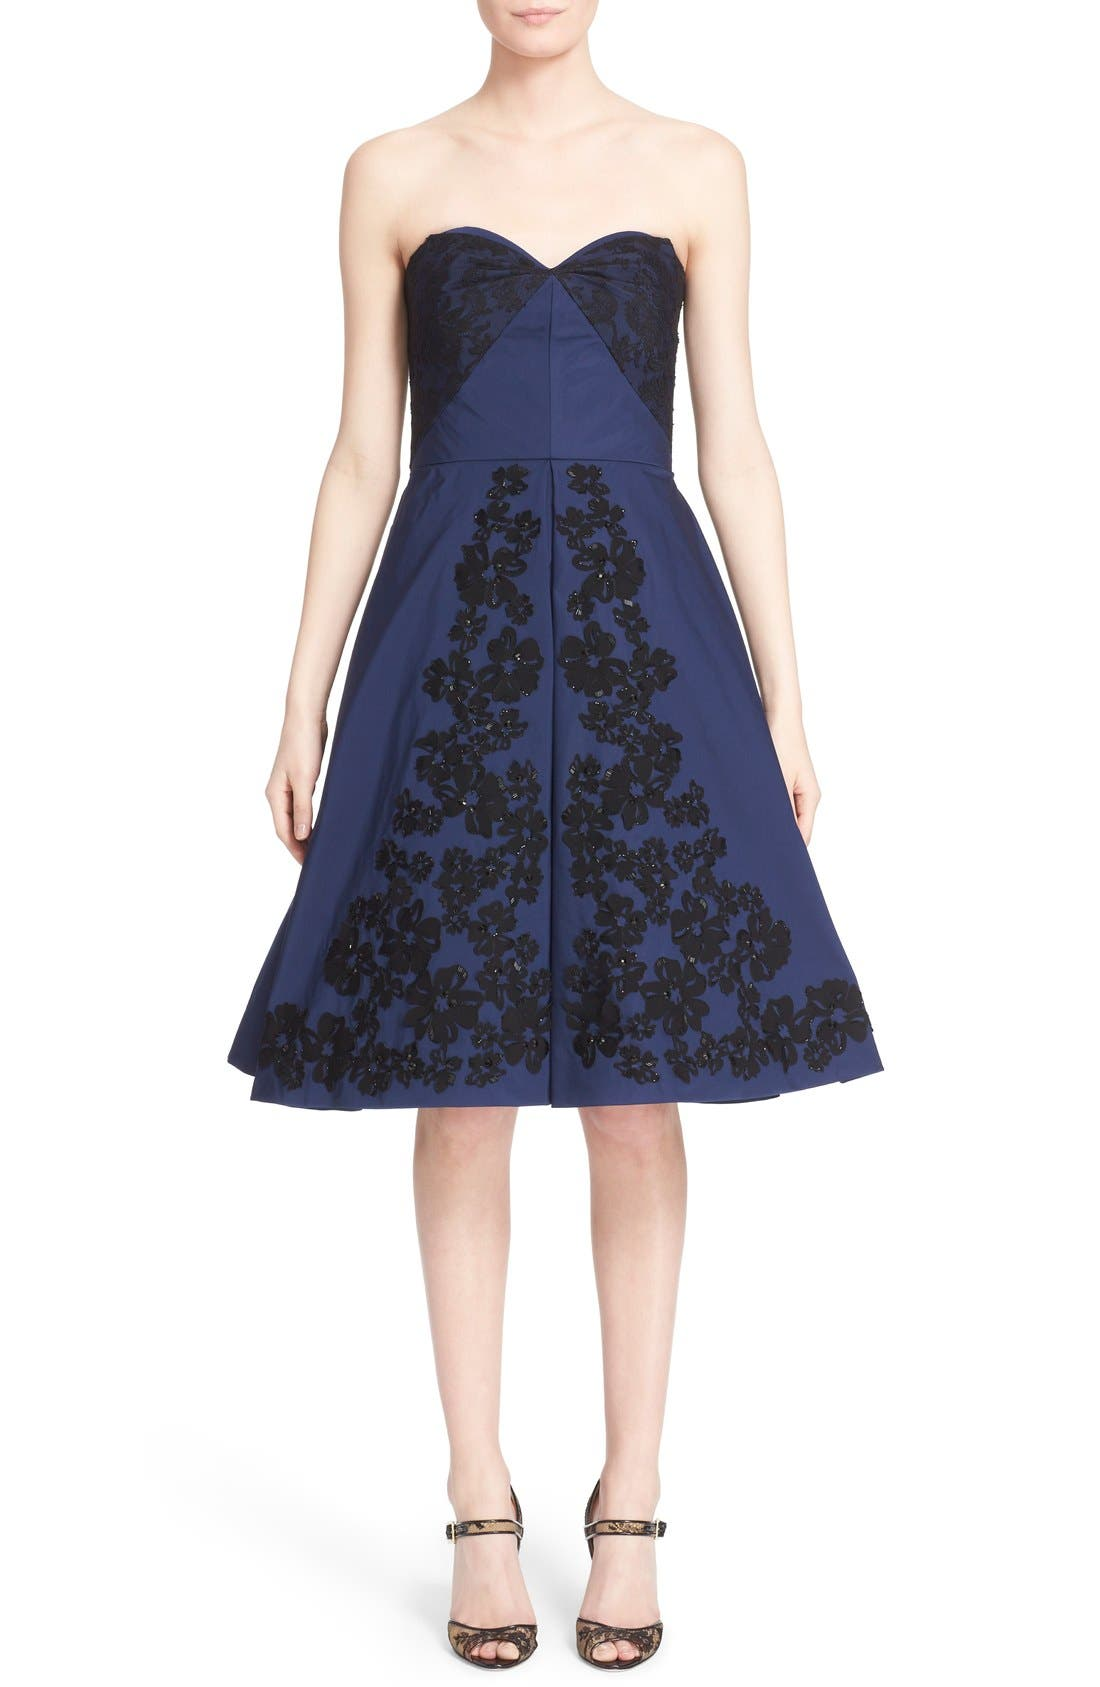 Alternate Image 1 Selected - Oscar de la Renta Floral Embellished Strapless Fit & Flare Dress